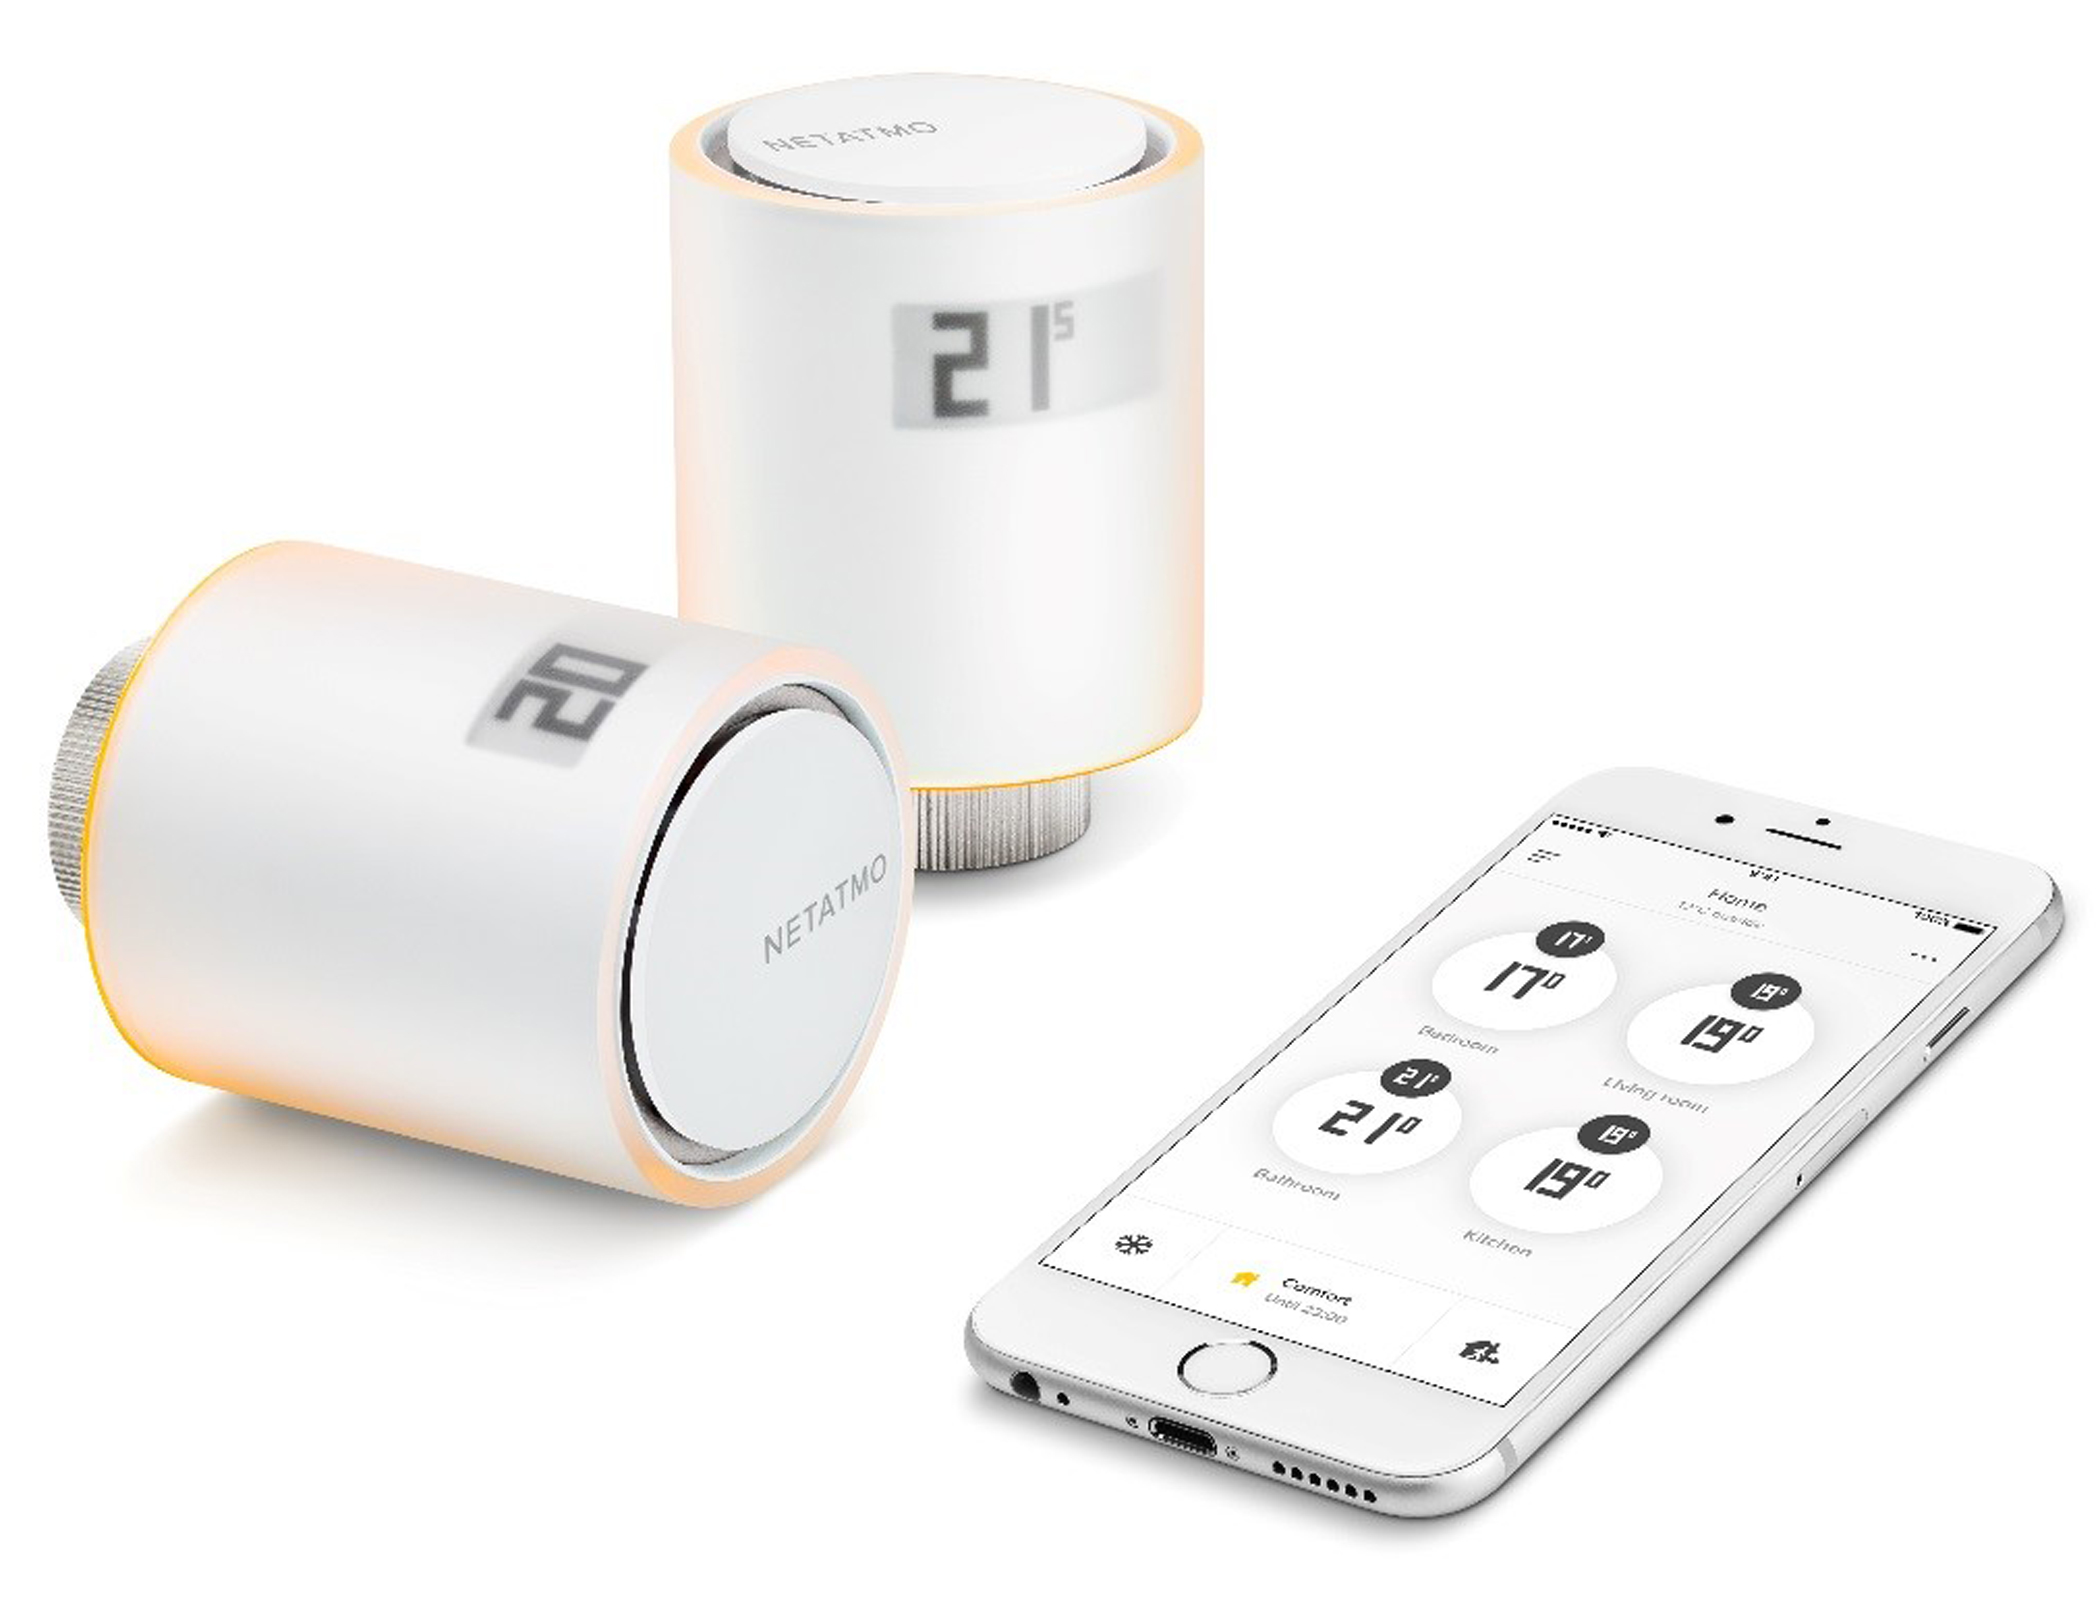 test netatmo thermostat awesome with test netatmo thermostat thermostat by netatmo tips cheats. Black Bedroom Furniture Sets. Home Design Ideas